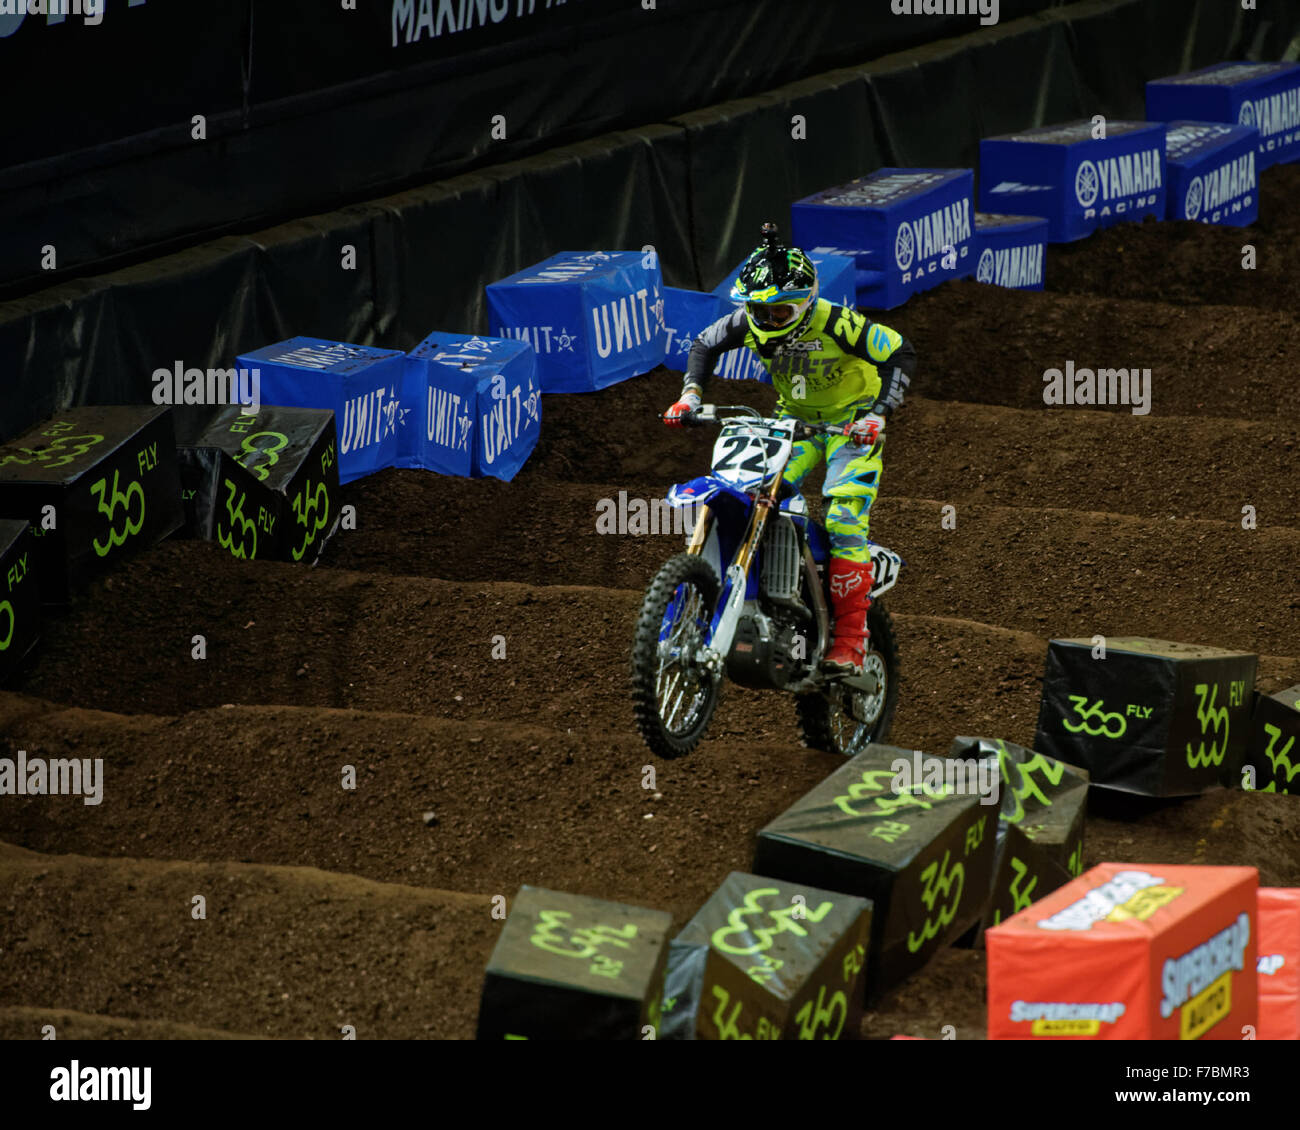 Sydney Olympic Park Australia 28th Nov 2015 The AUS X Open Motocross Day One Chad Reed Rider Of 22 Yamaha Charges Home In SX1 Finals